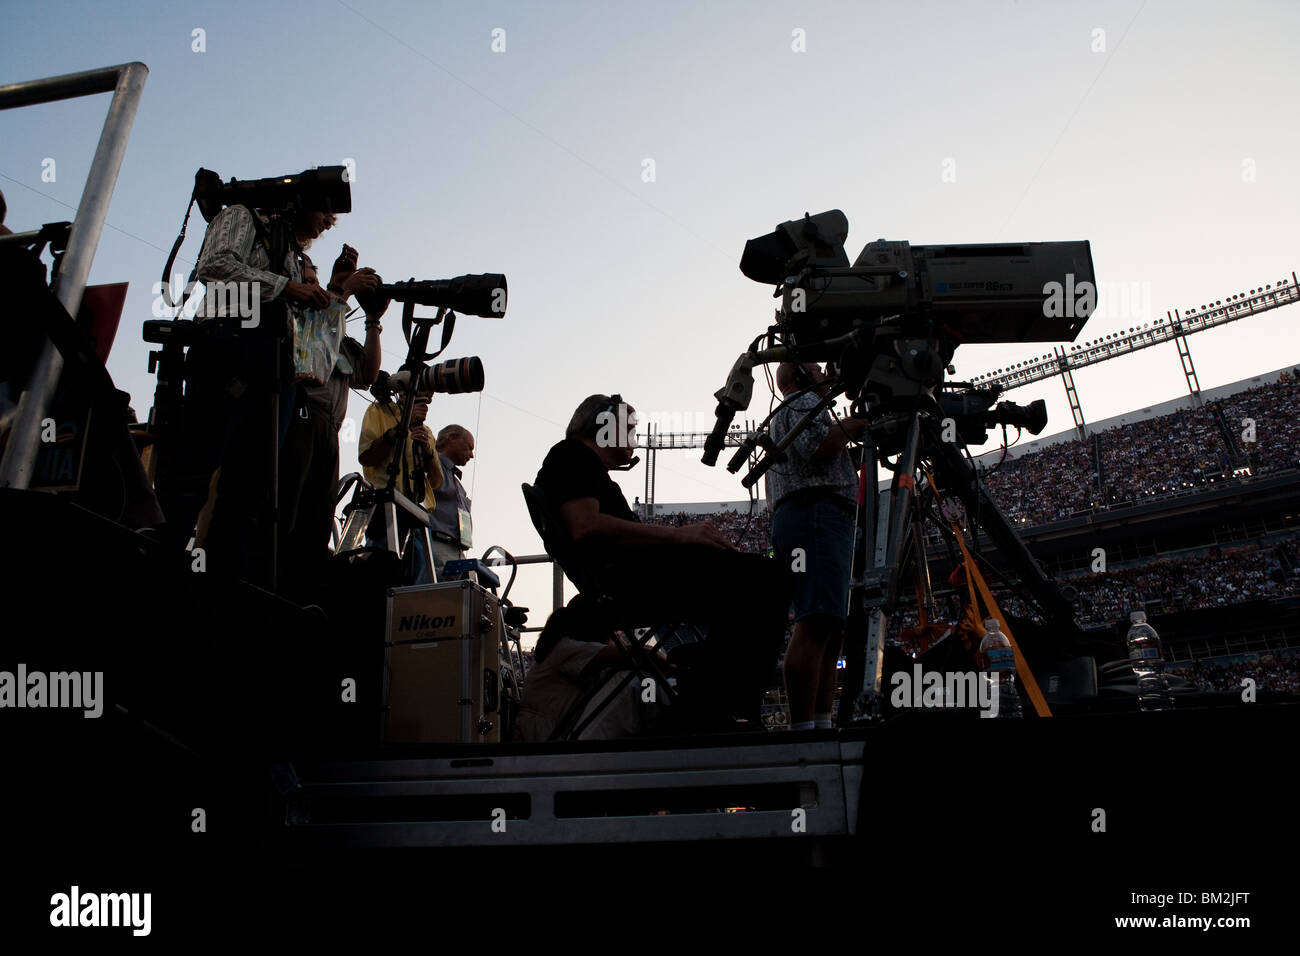 Silhouette of Cameras at Invesco - Stock Image